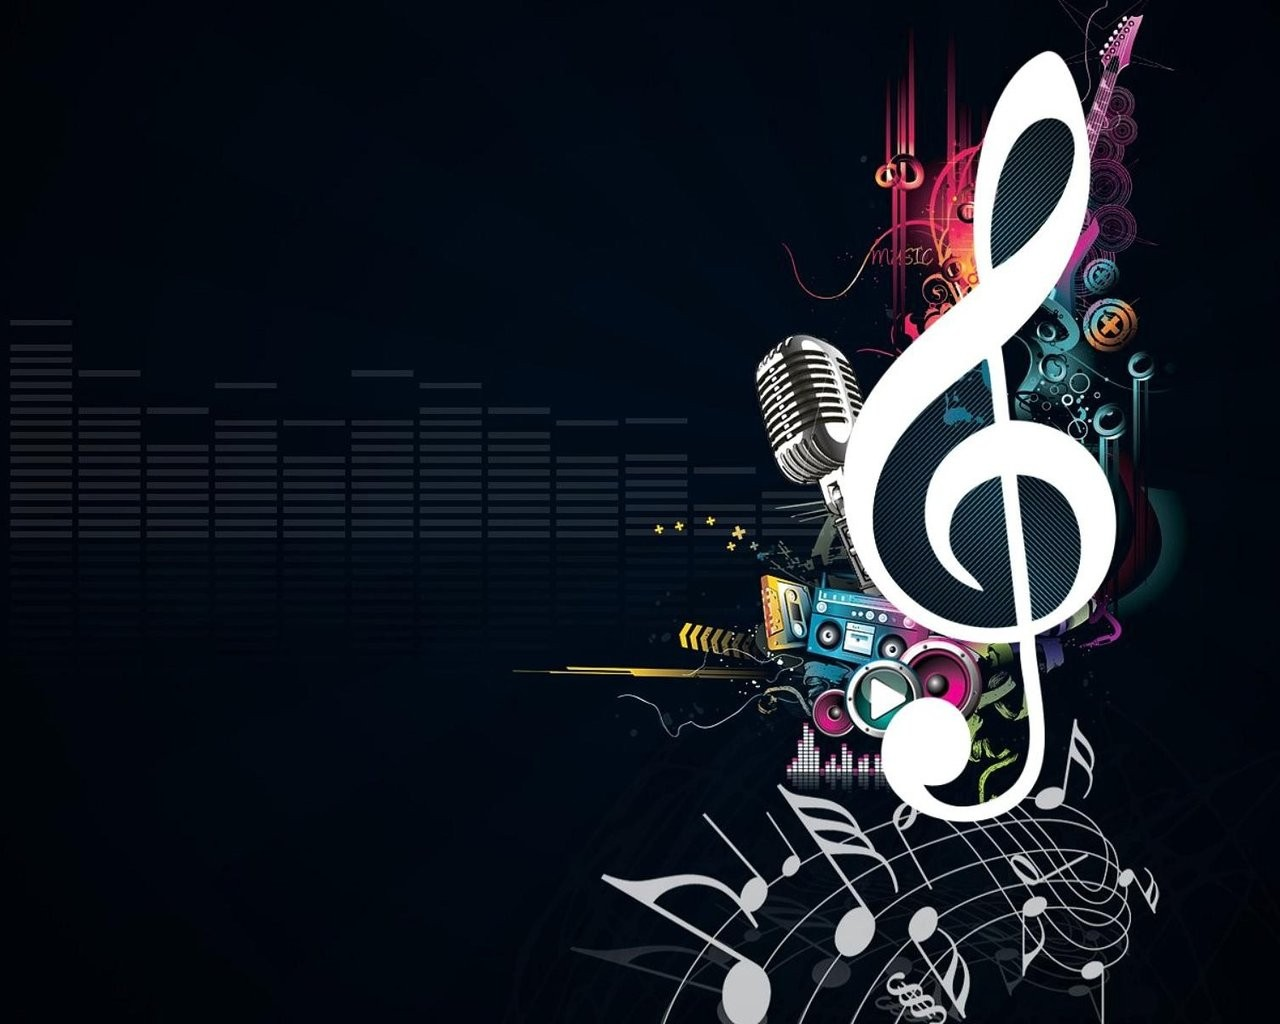 Cool Music Backgrounds 8332 Hd Wallpapers in Music   Imagescicom 1280x1024